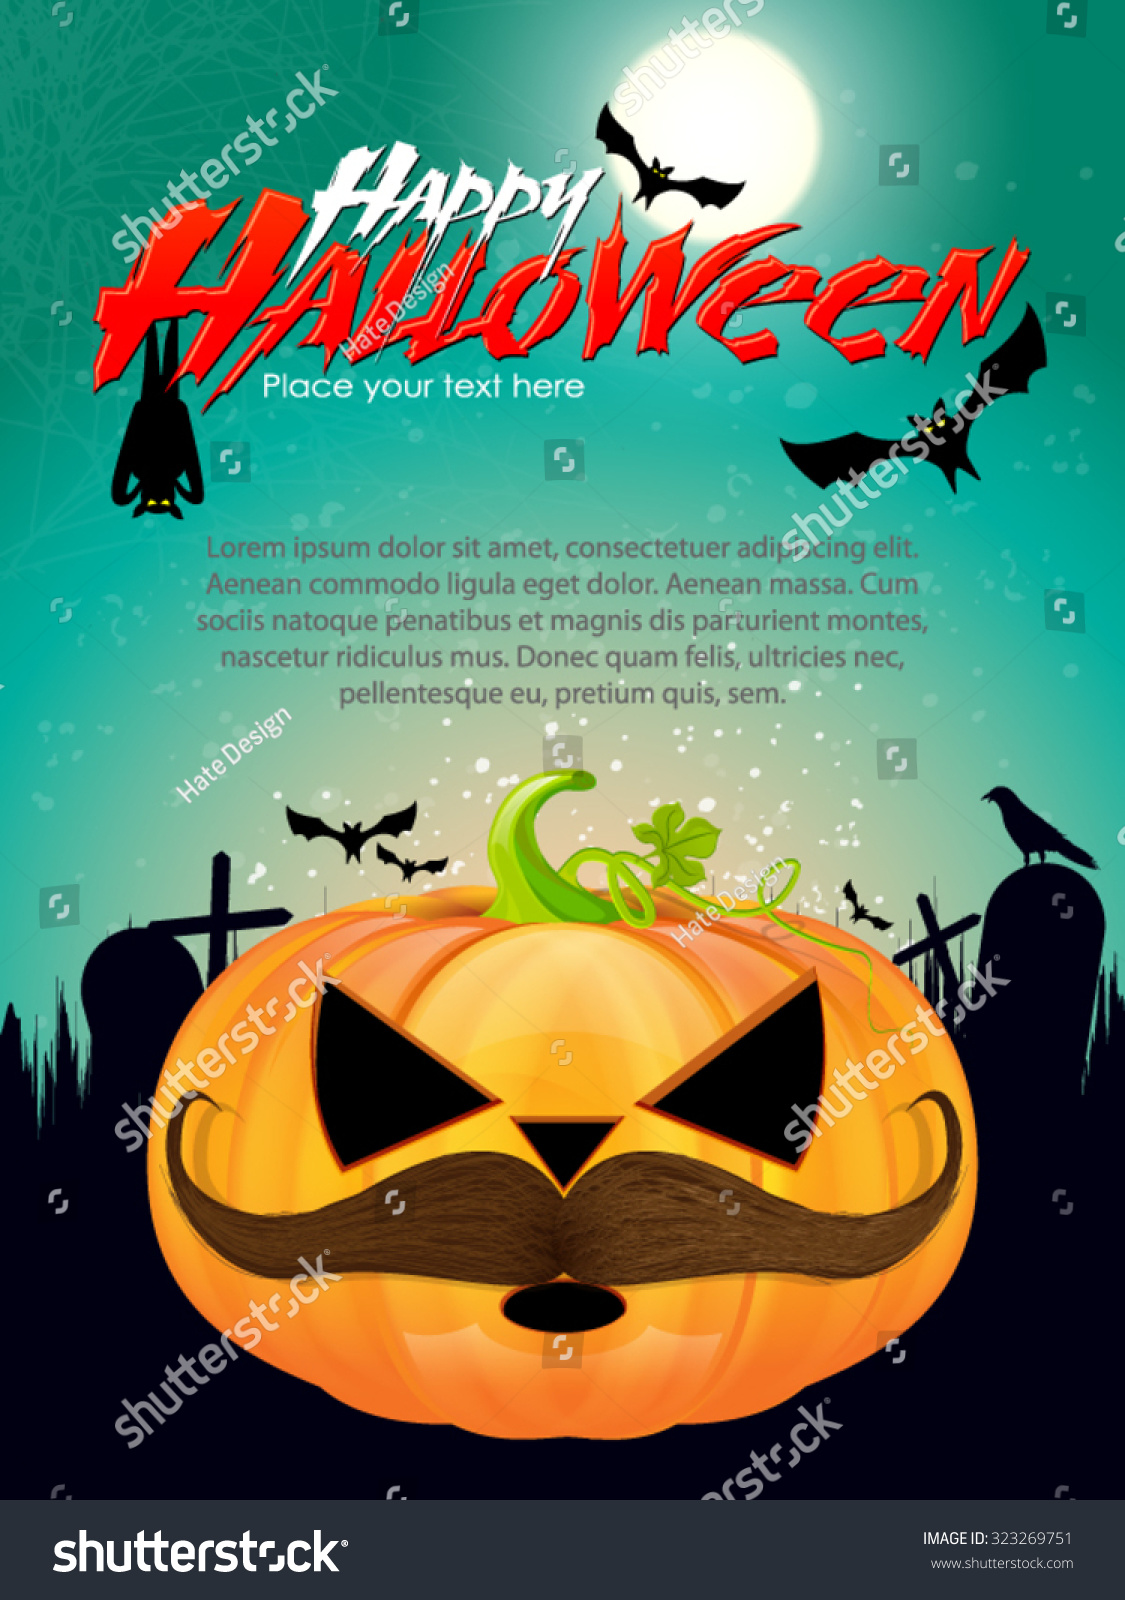 Halloween Party Invitation Card Design with Mustache Stock Vector ...